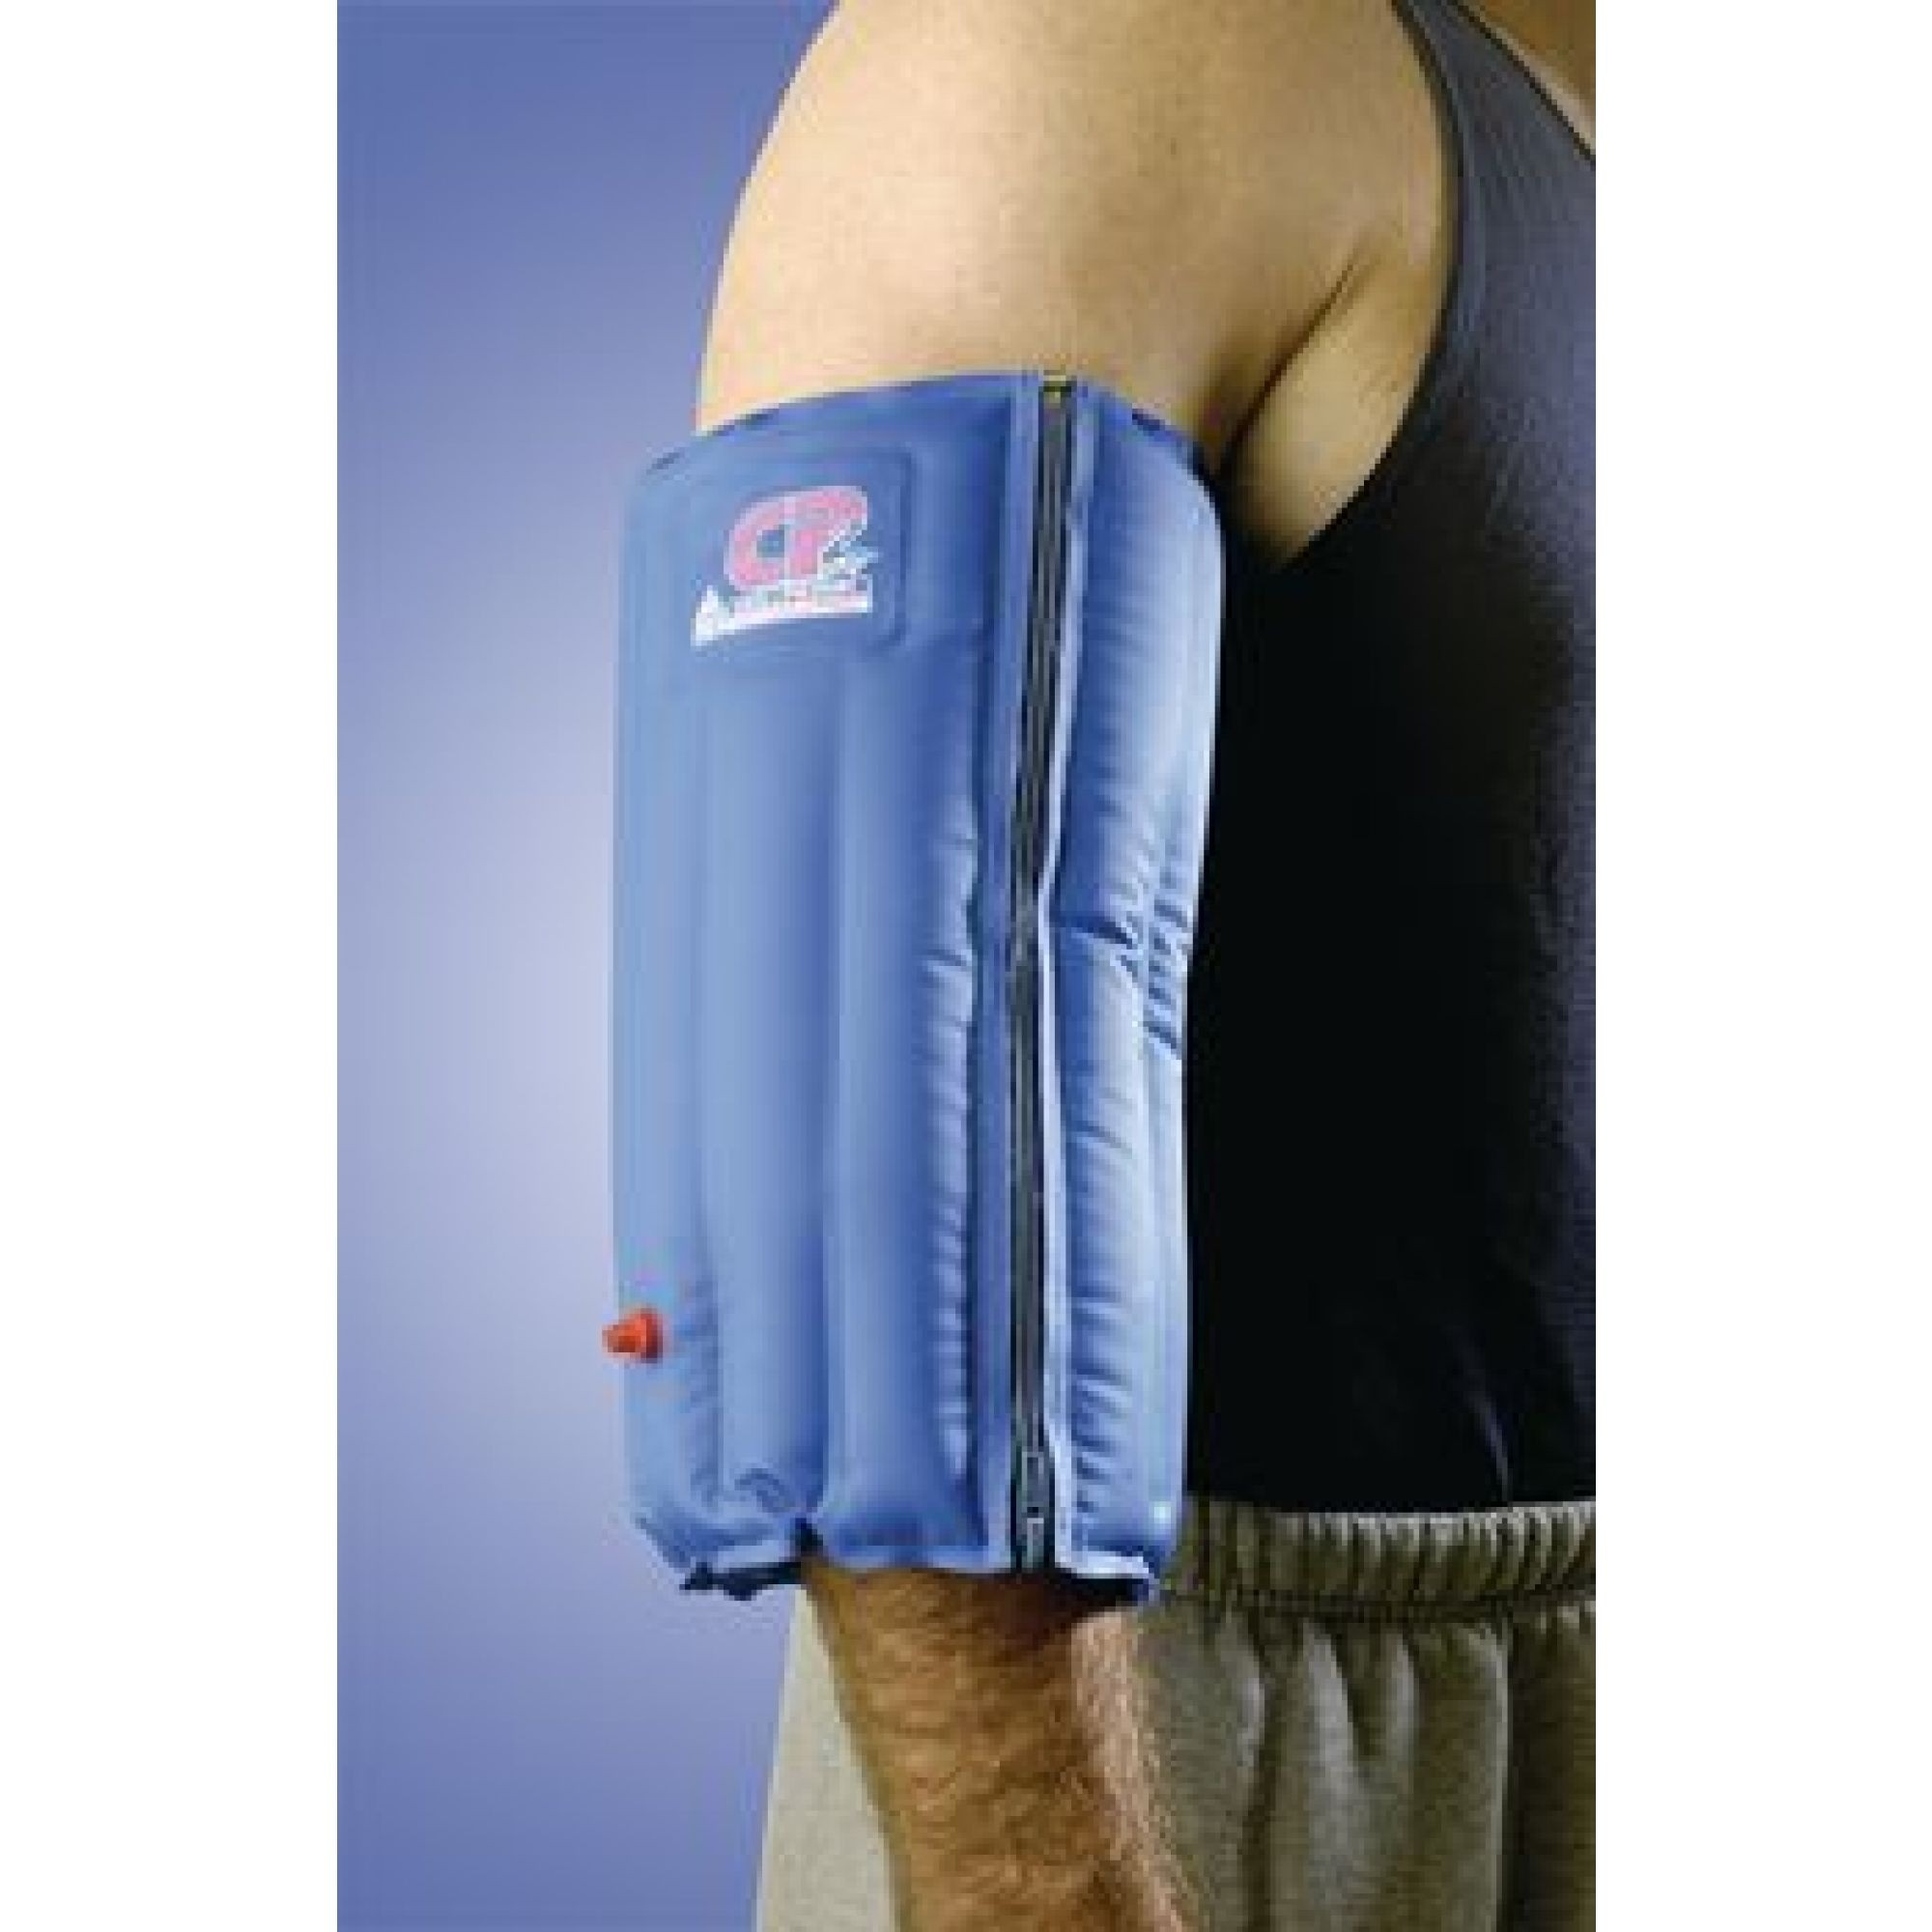 Sammons Preston Inflatable Cold Packs 965149, 965159